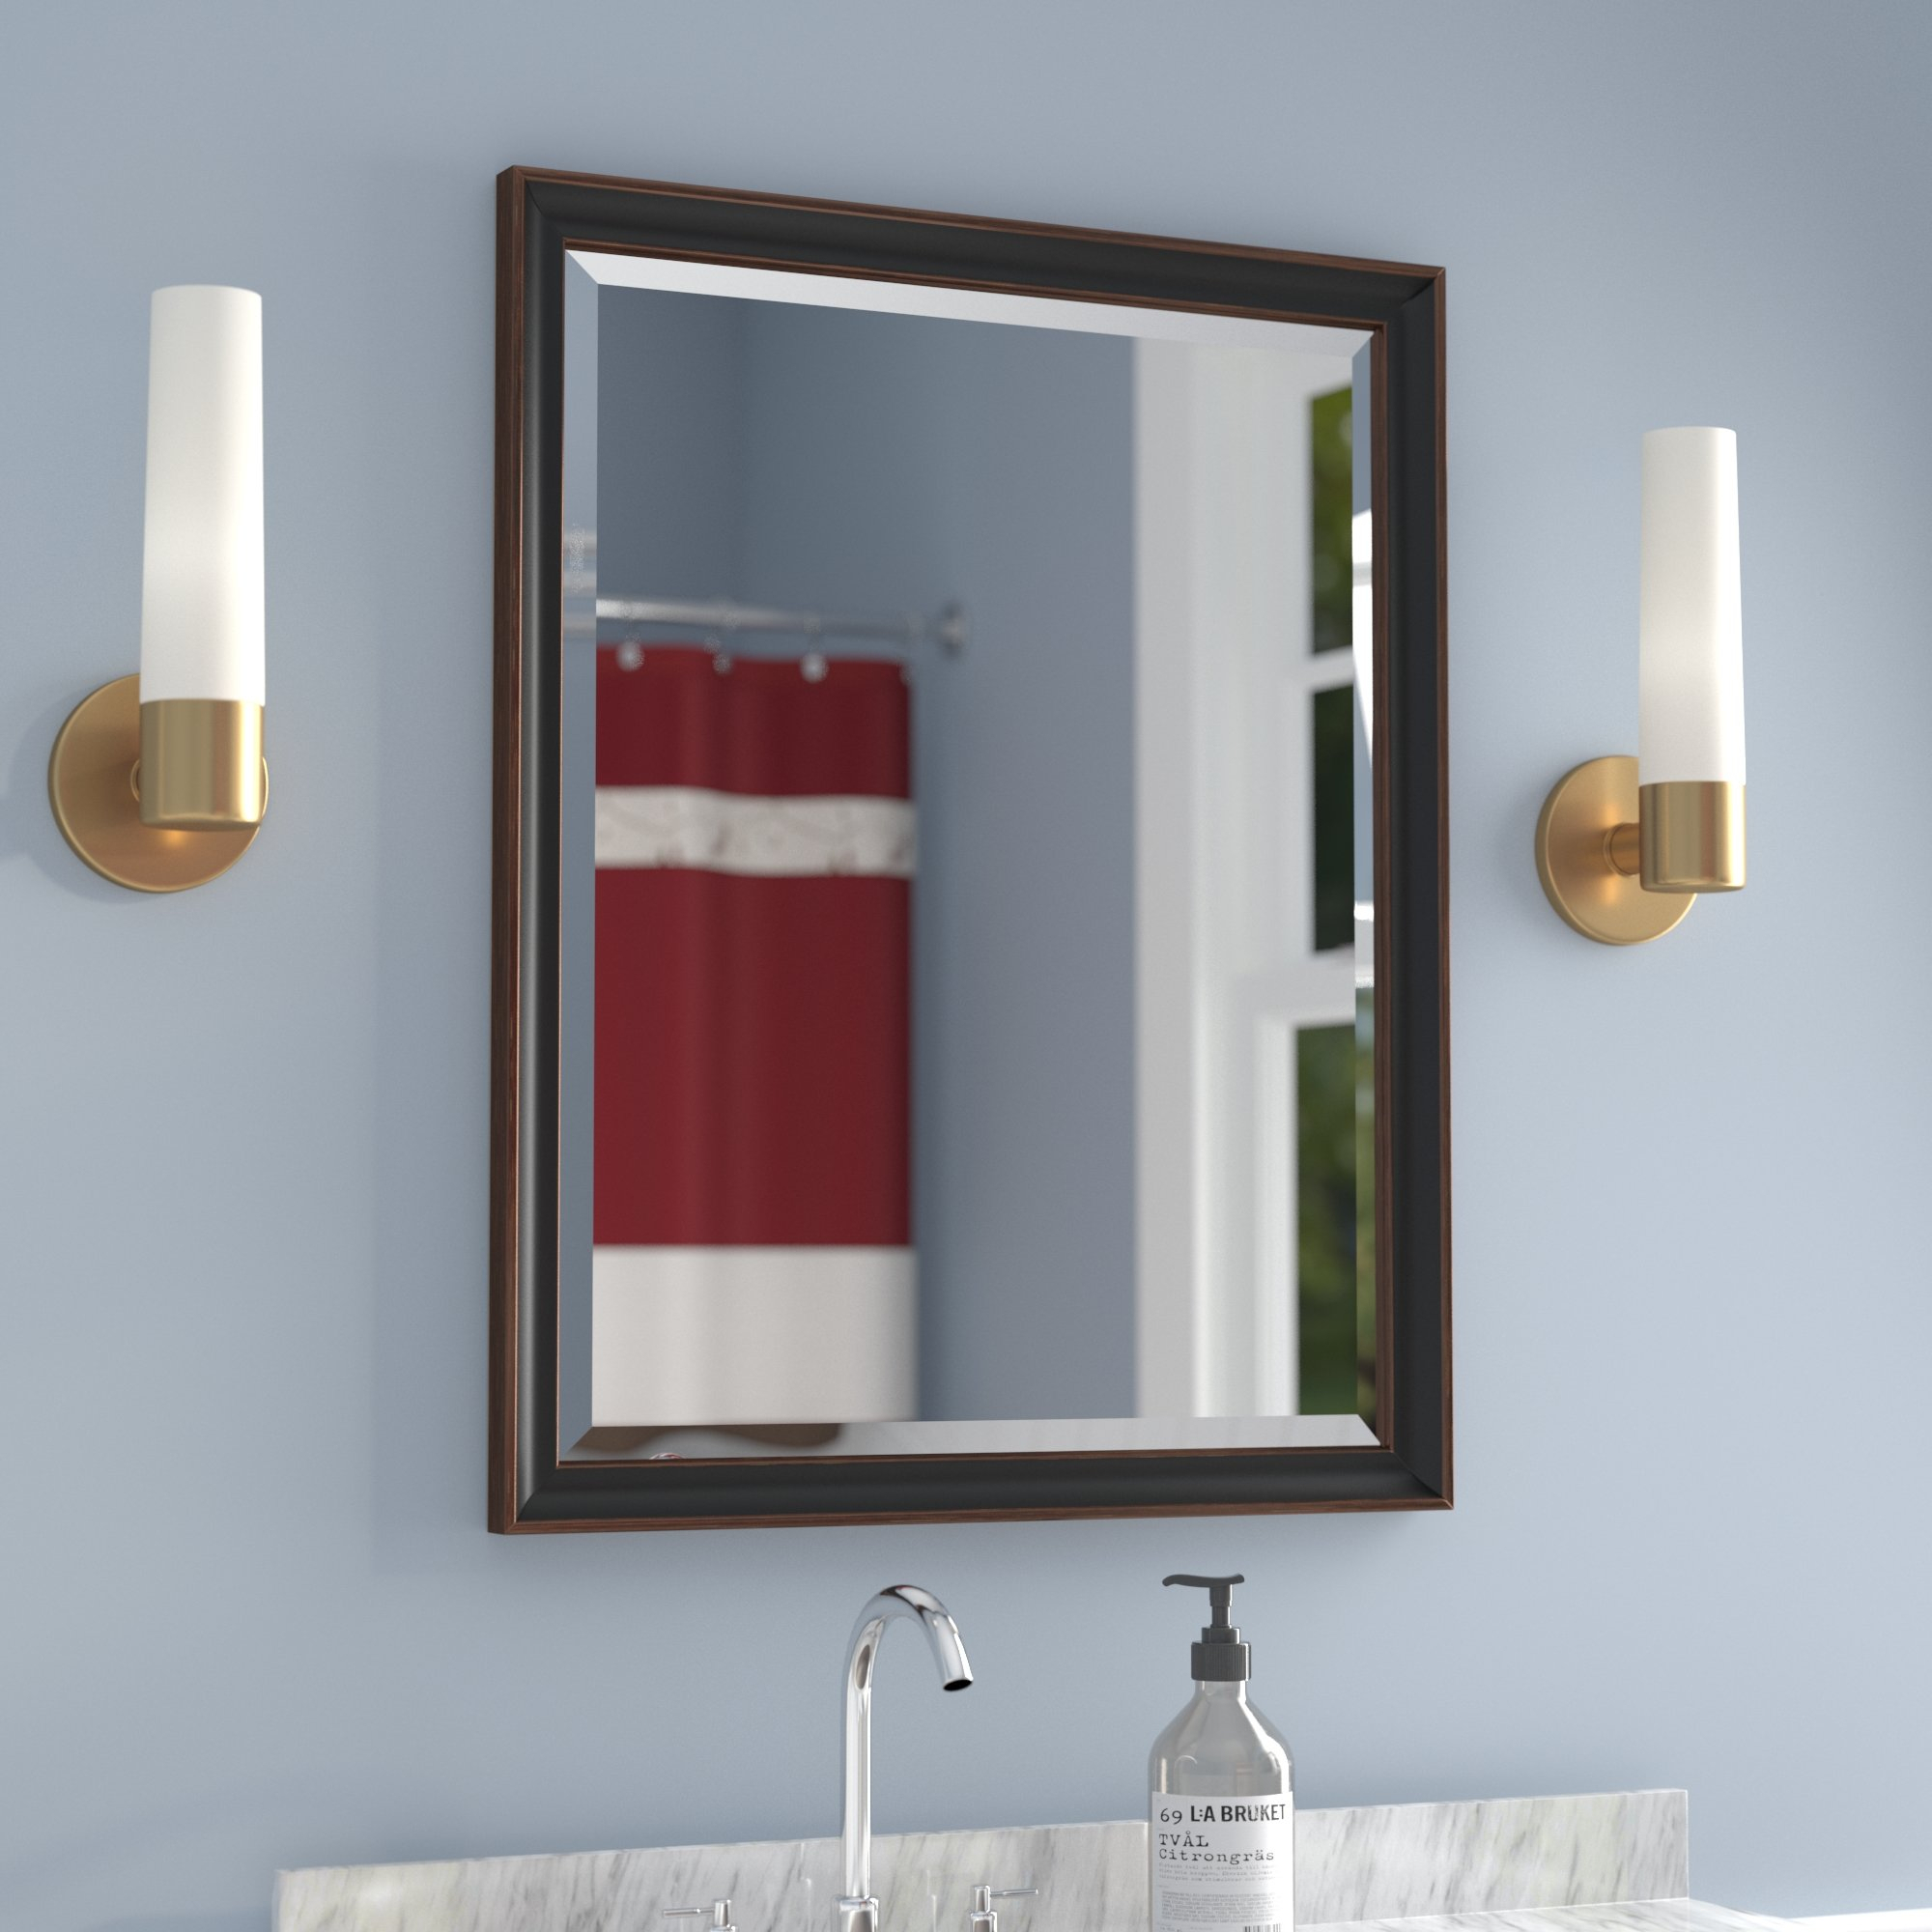 Culley Framed Beveled Wall Accent Mirror Inside Dedrick Decorative Framed Modern And Contemporary Wall Mirrors (Image 5 of 20)